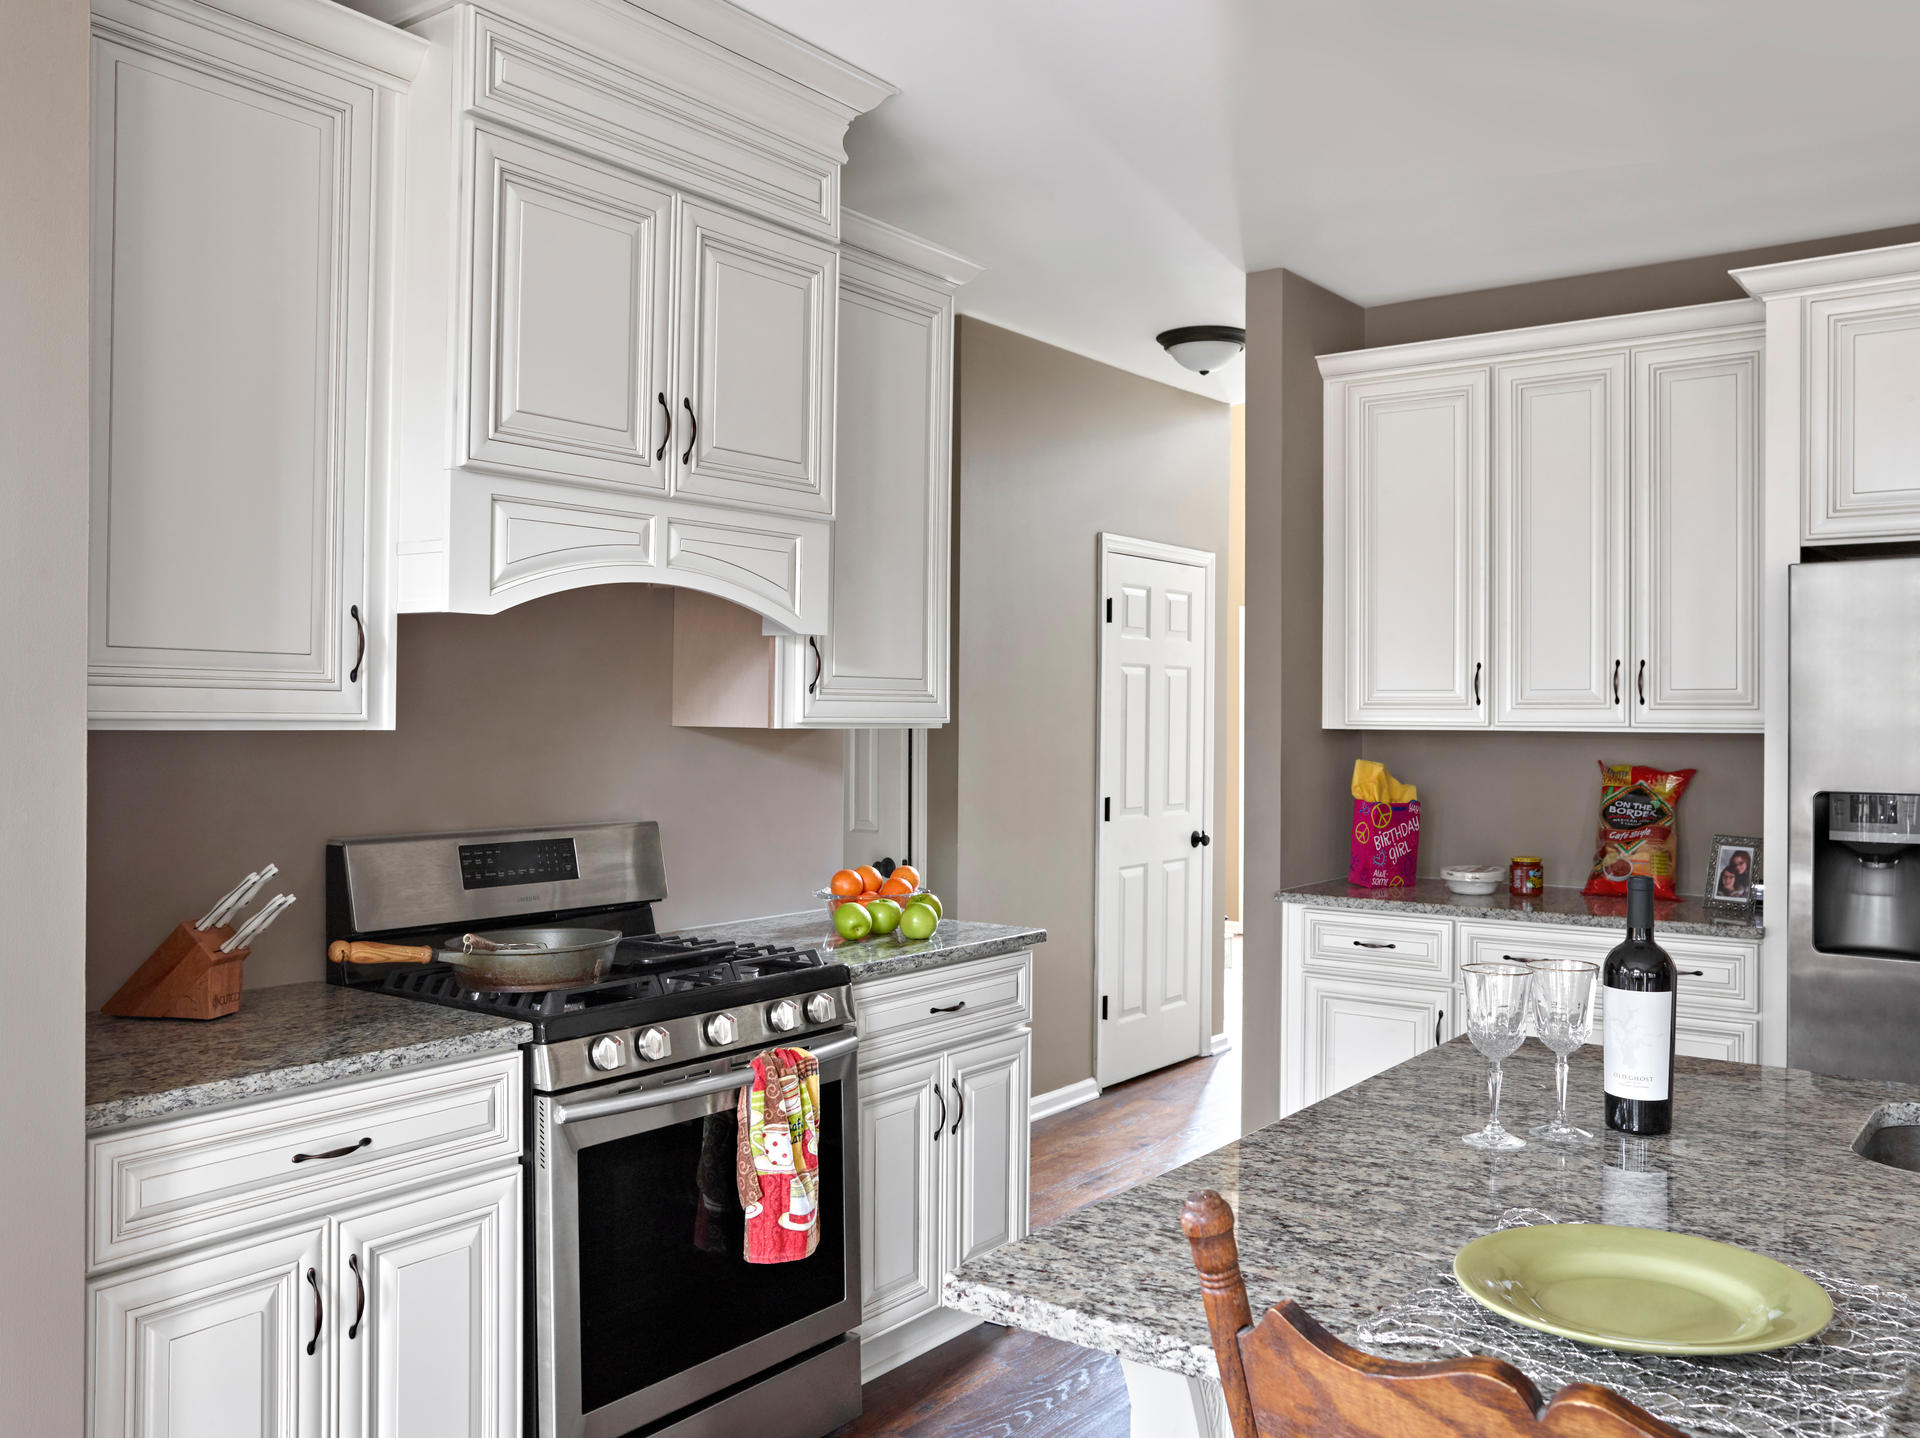 US Stone Outlet Cabinets & Countertops of New Orleans image 1